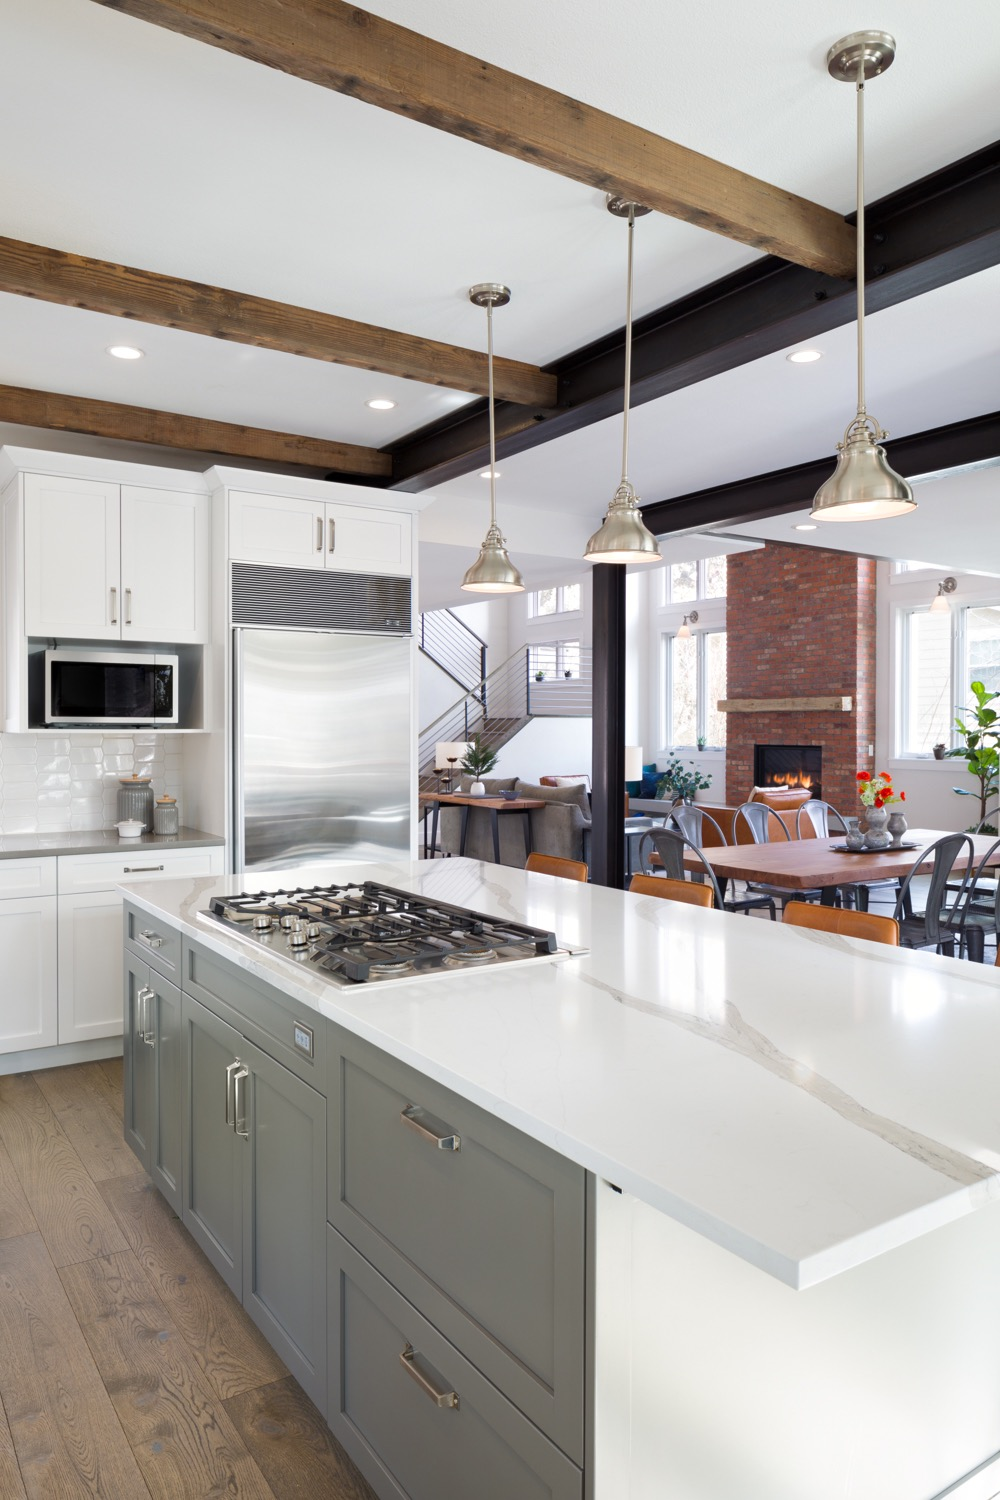 Melton Design Build Boulder Colorado Whole Home Remodel Kitchen